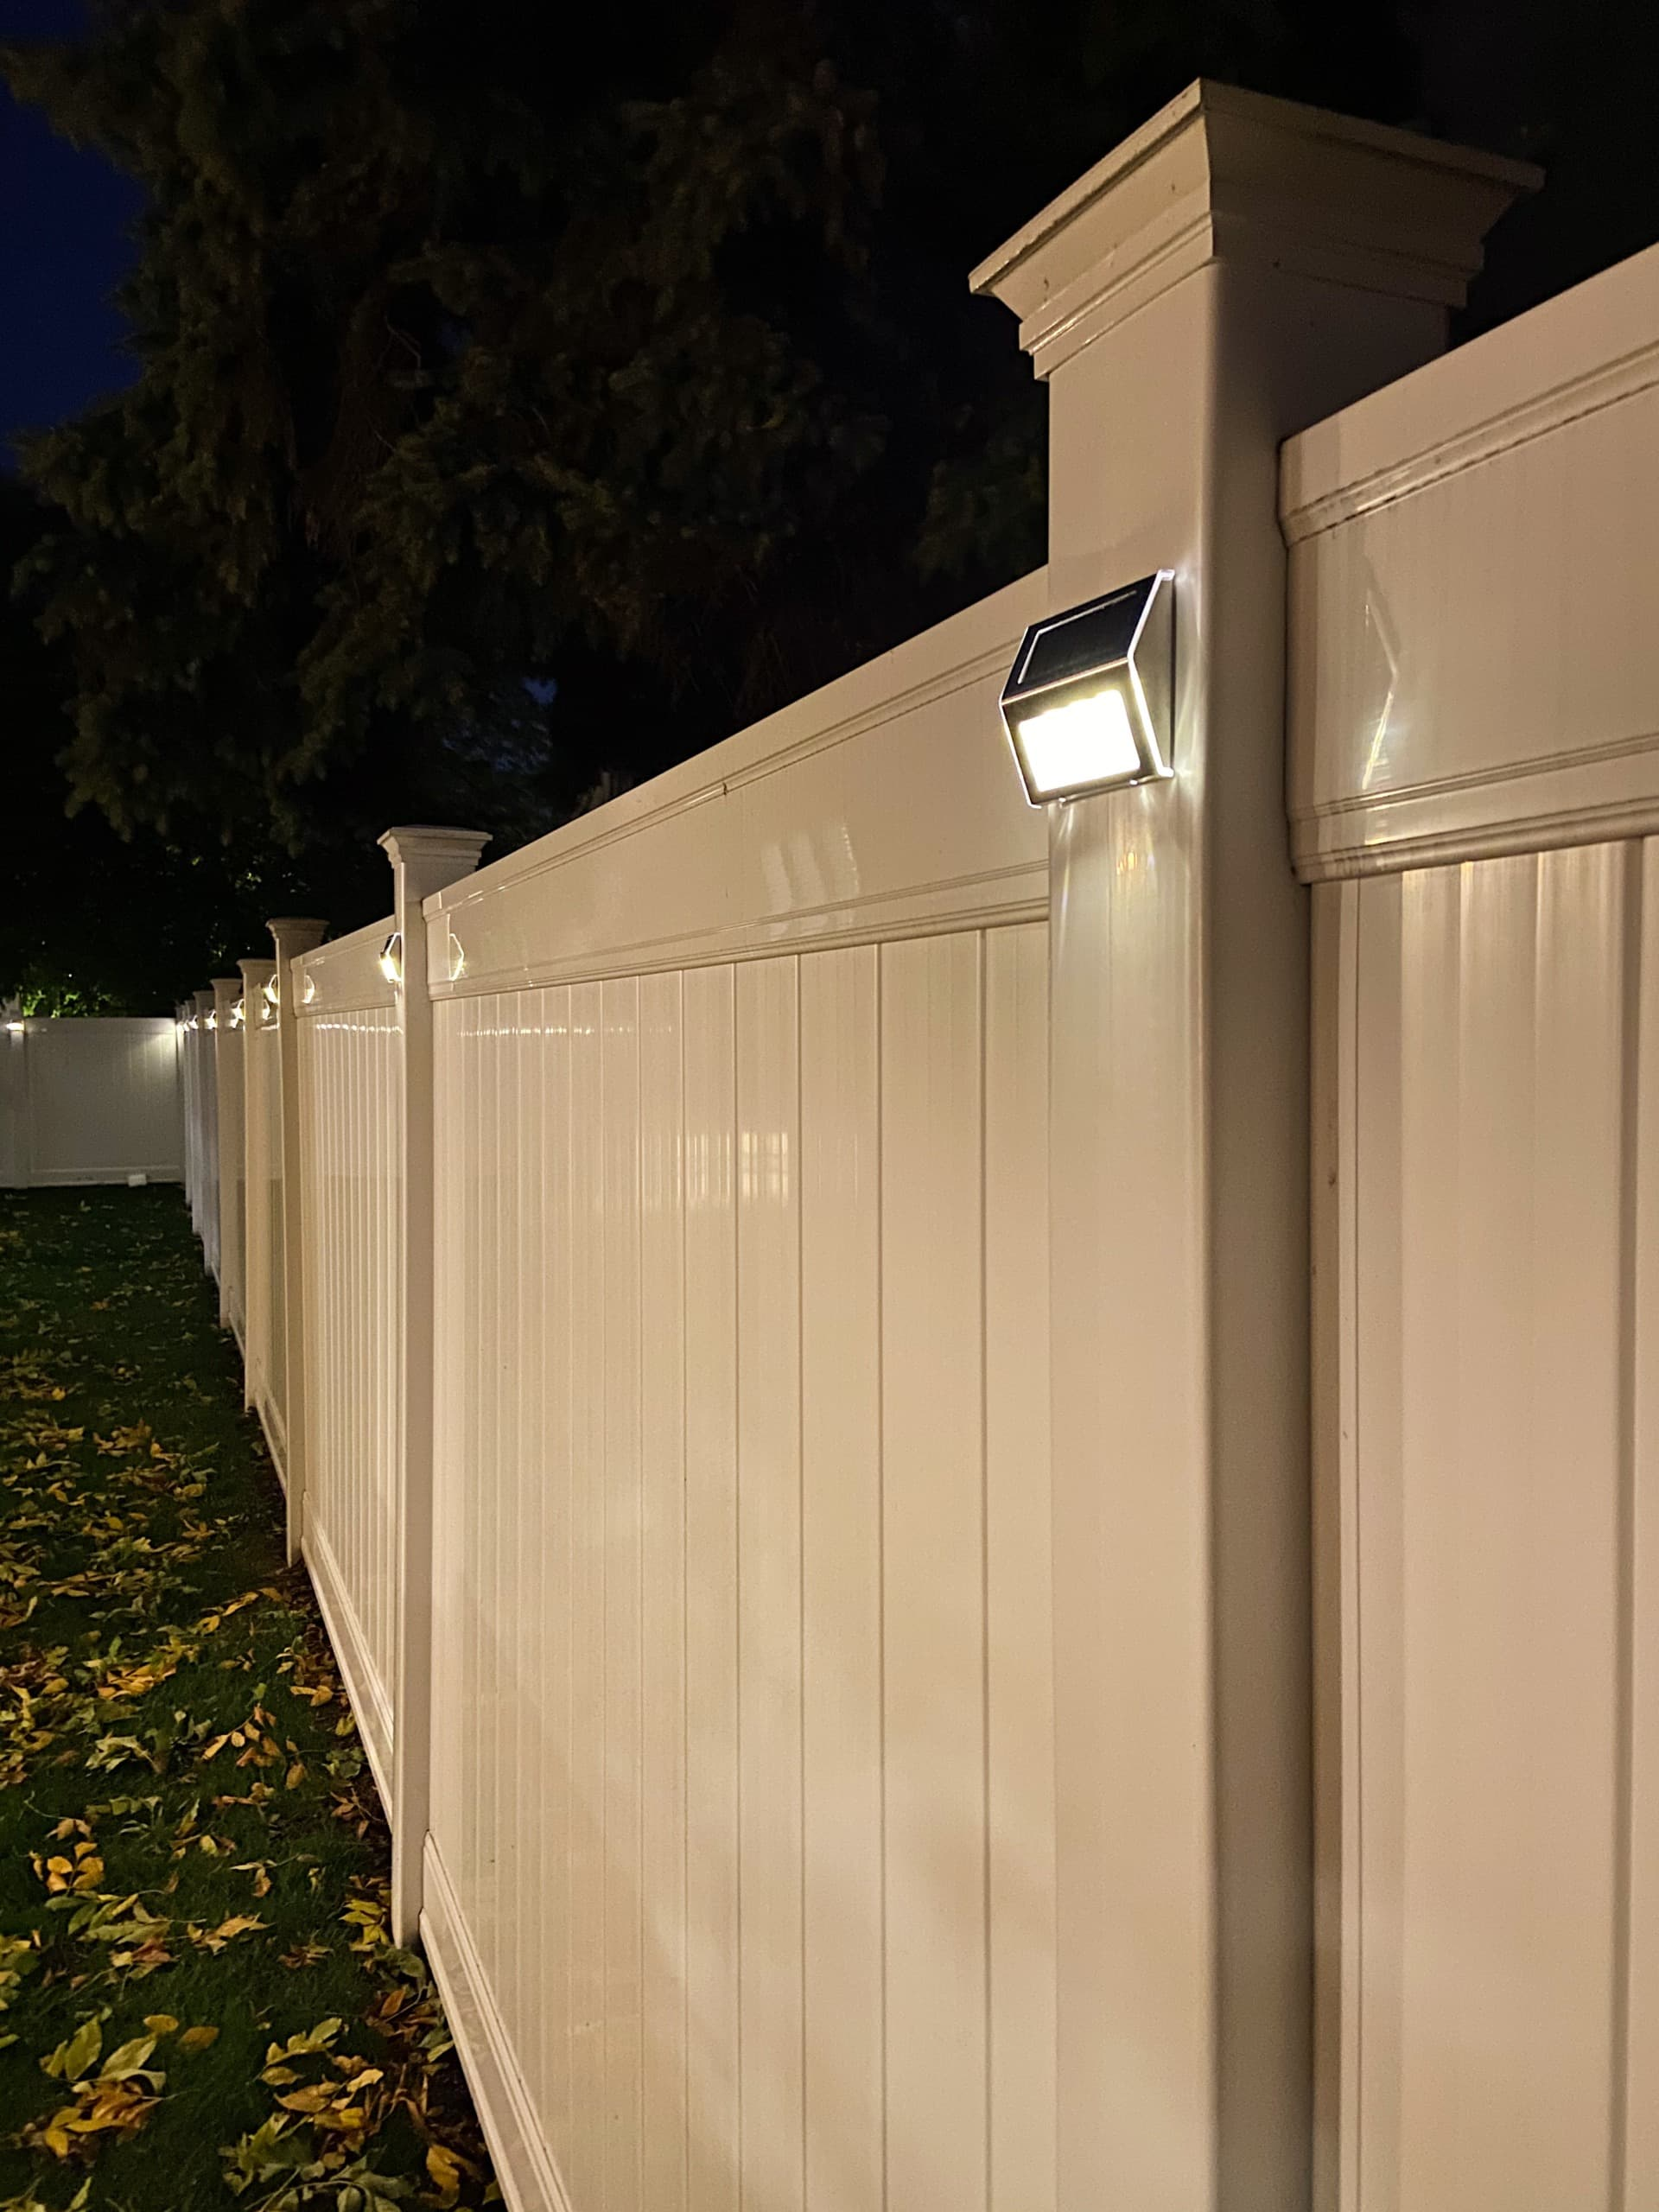 Solar lights in our backyard